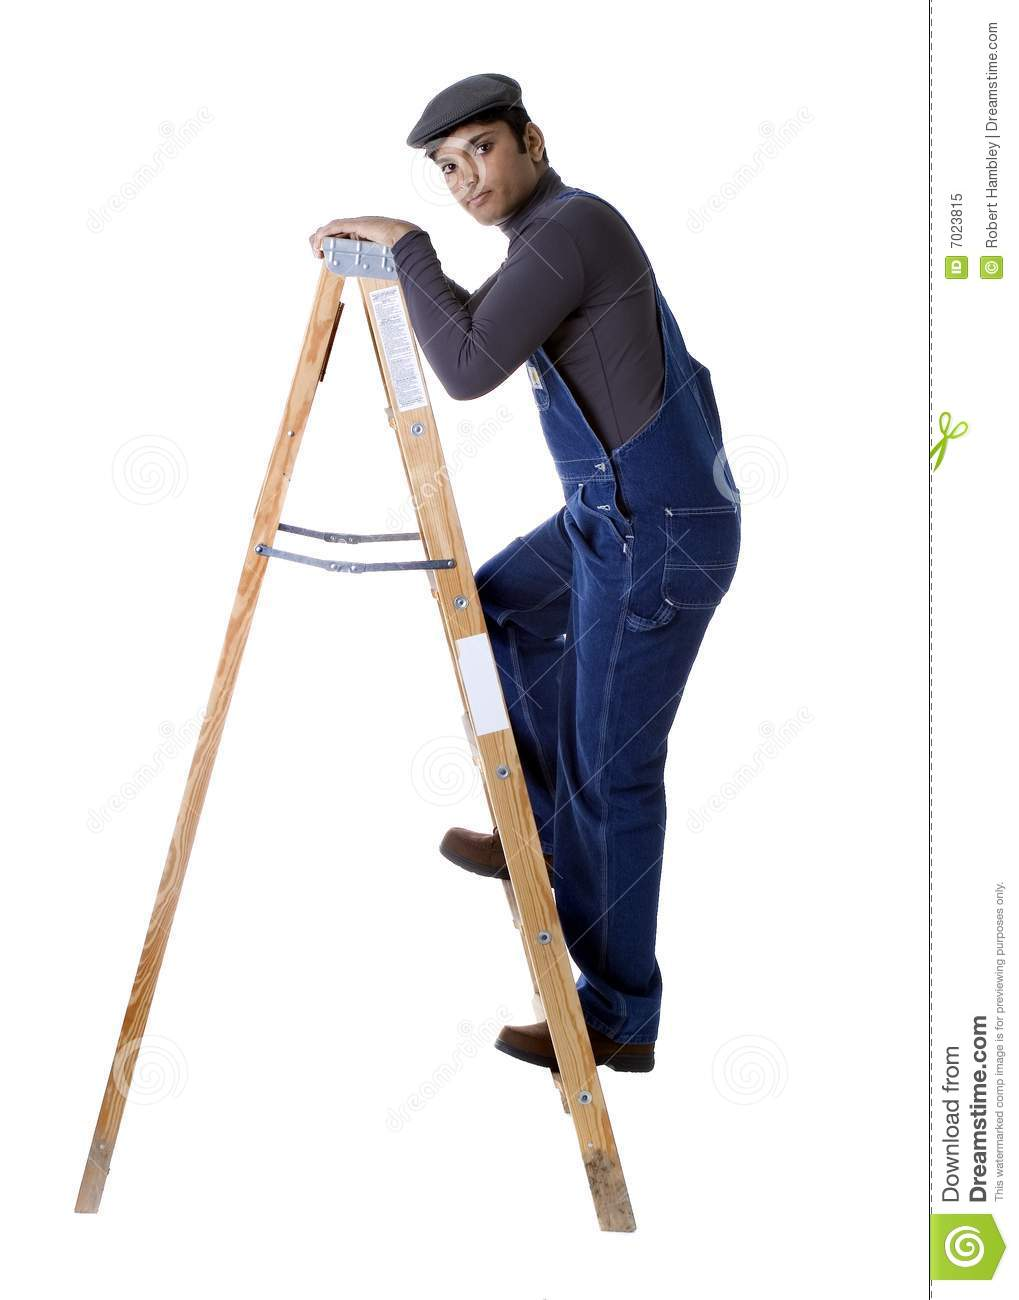 Worker Climbing Step Ladder Stock Image - Image: 7023815 for Worker Climbing Ladder  83fiz